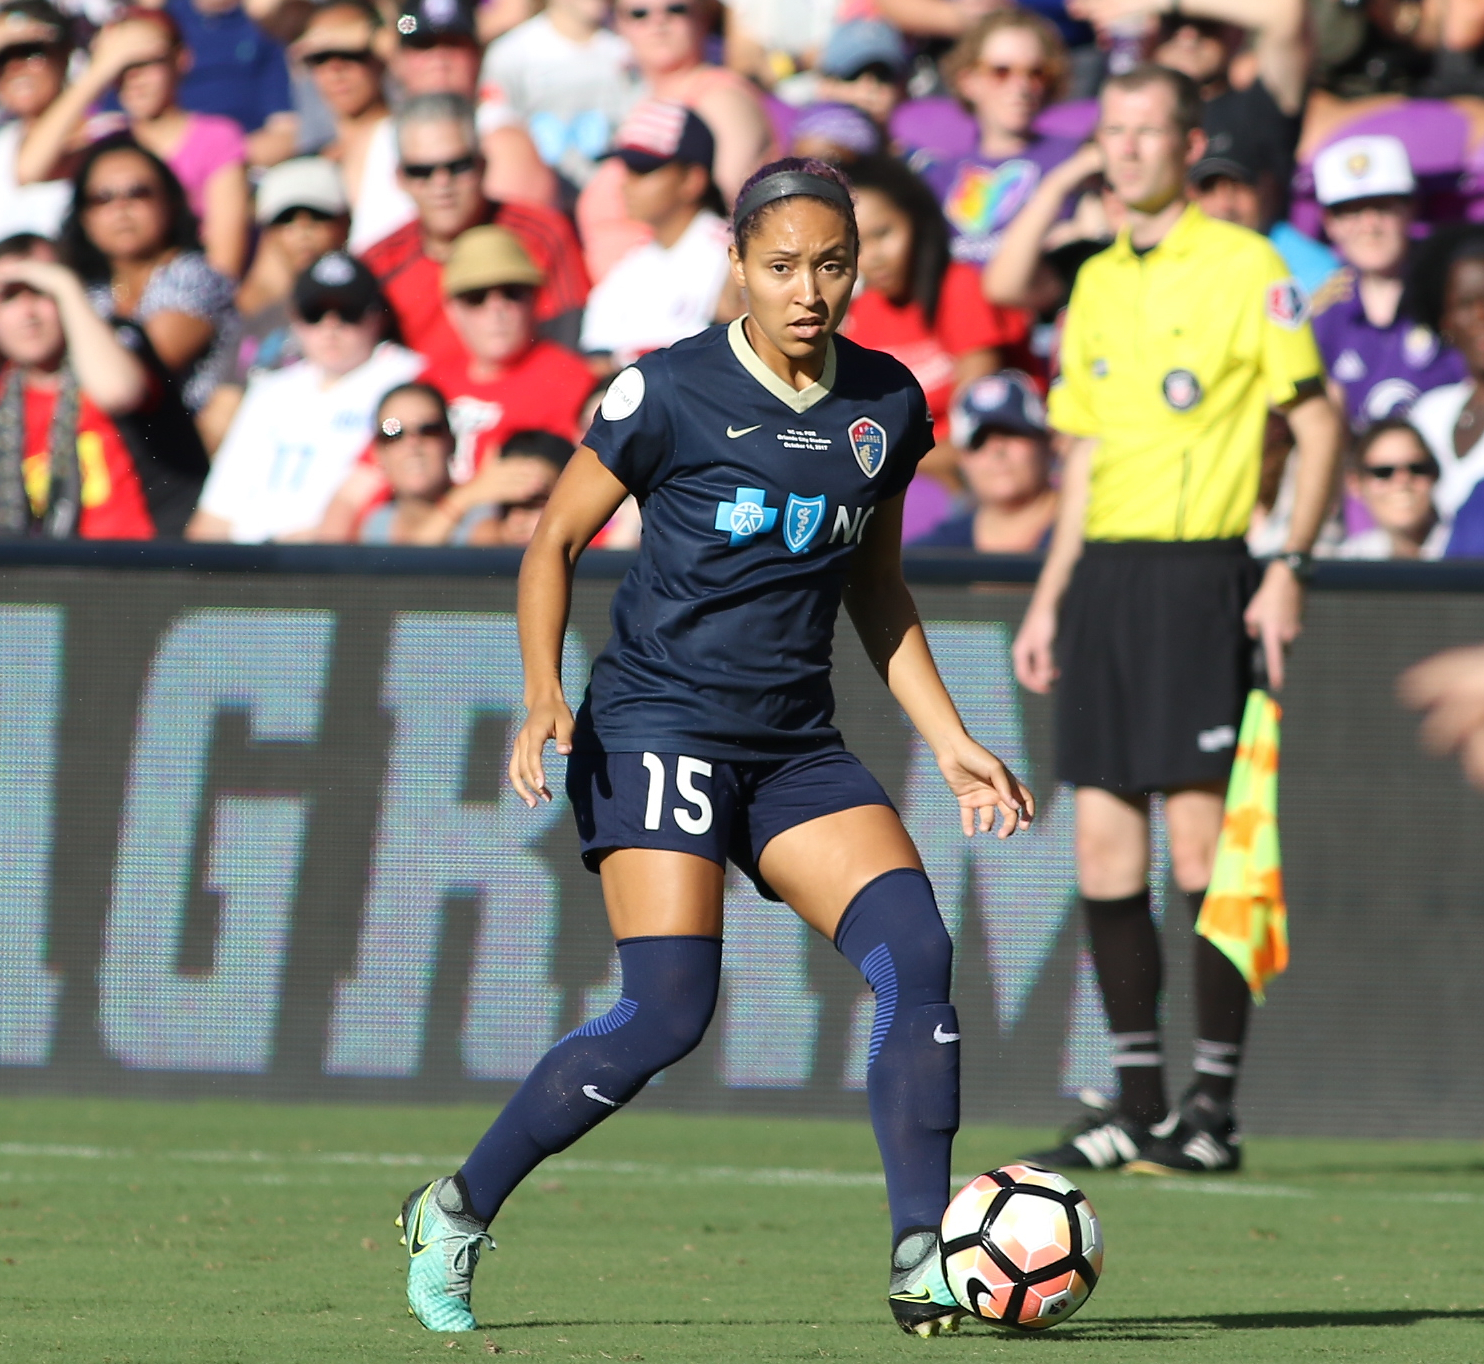 Dribbling the ball up the field, number 15, Jaelene Hinkle, looks to score during a game. The NC Courage are currently on top of the standings in the NWSL, the most prestigious women's soccer  league in the U.S.